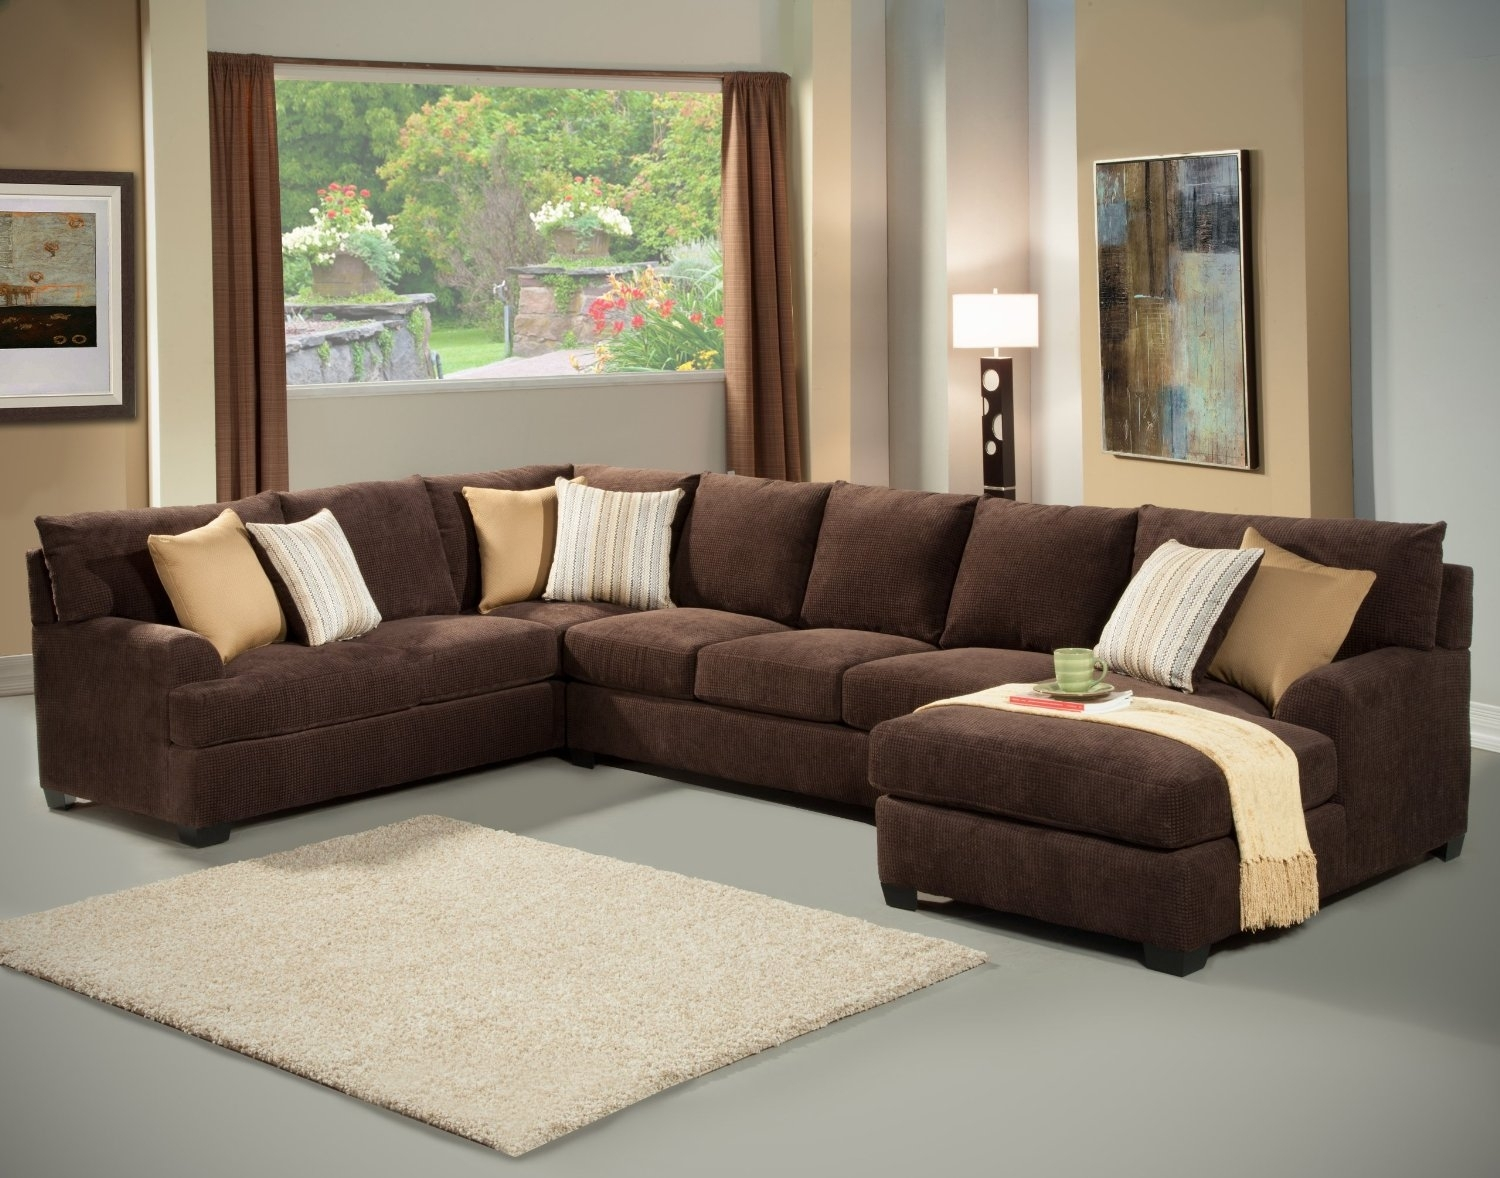 Sectional Sofas In Phoenix Az | Functionalities with Phoenix Arizona Sectional Sofas (Image 9 of 10)